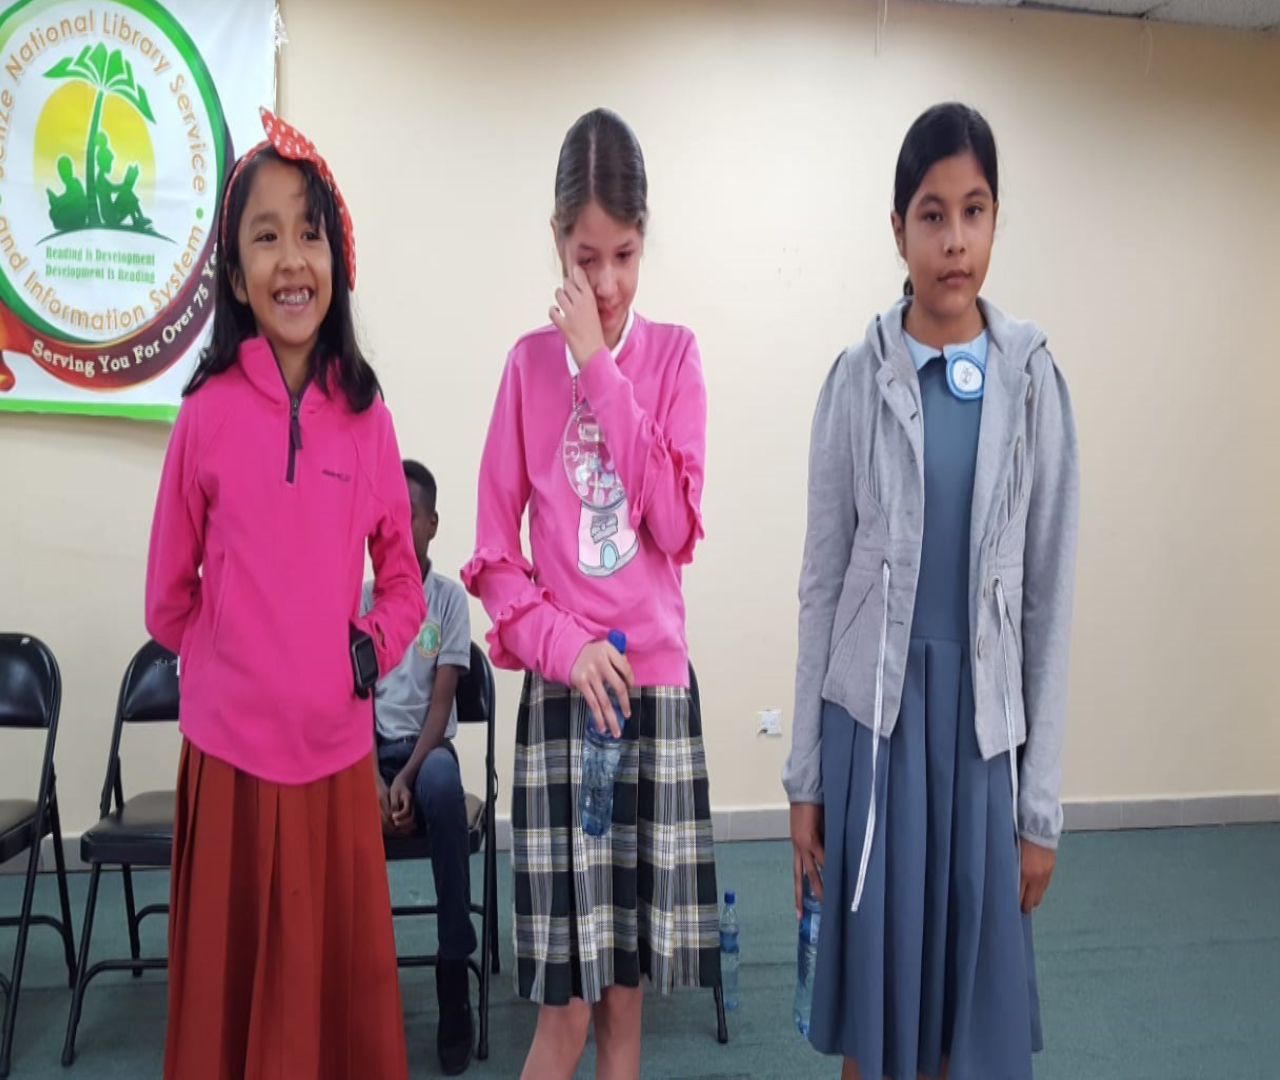 STUDENTS PARTICIPATE IN READING COMPETITION